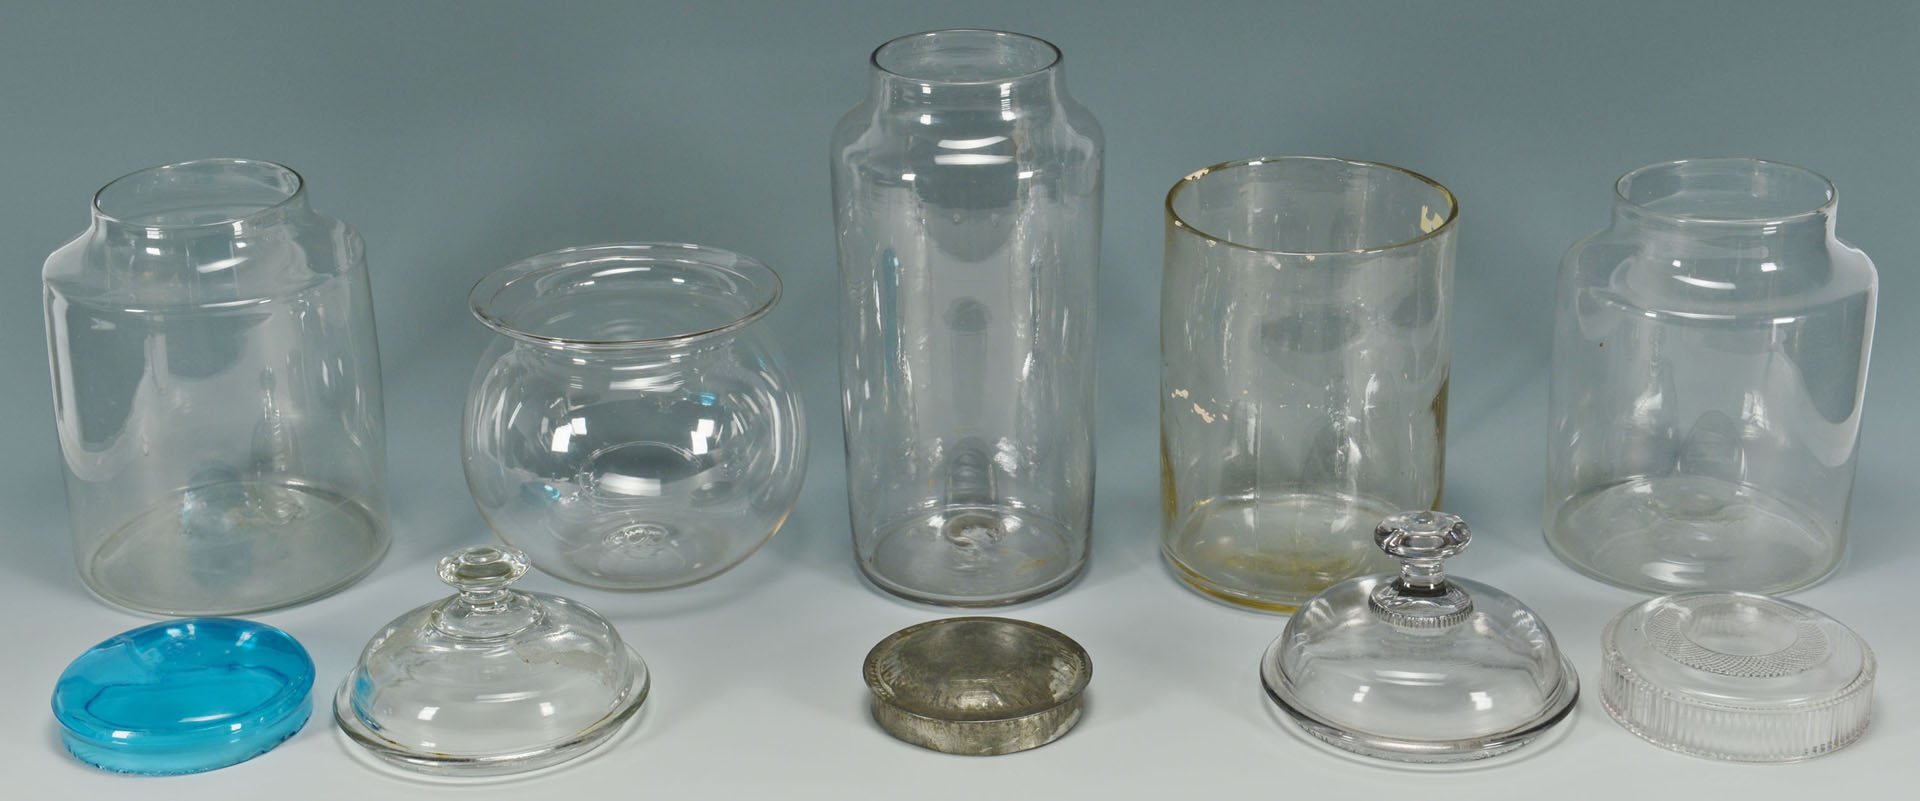 Lot 156: 9 Early Glass Canister Jars with tin and glass lid